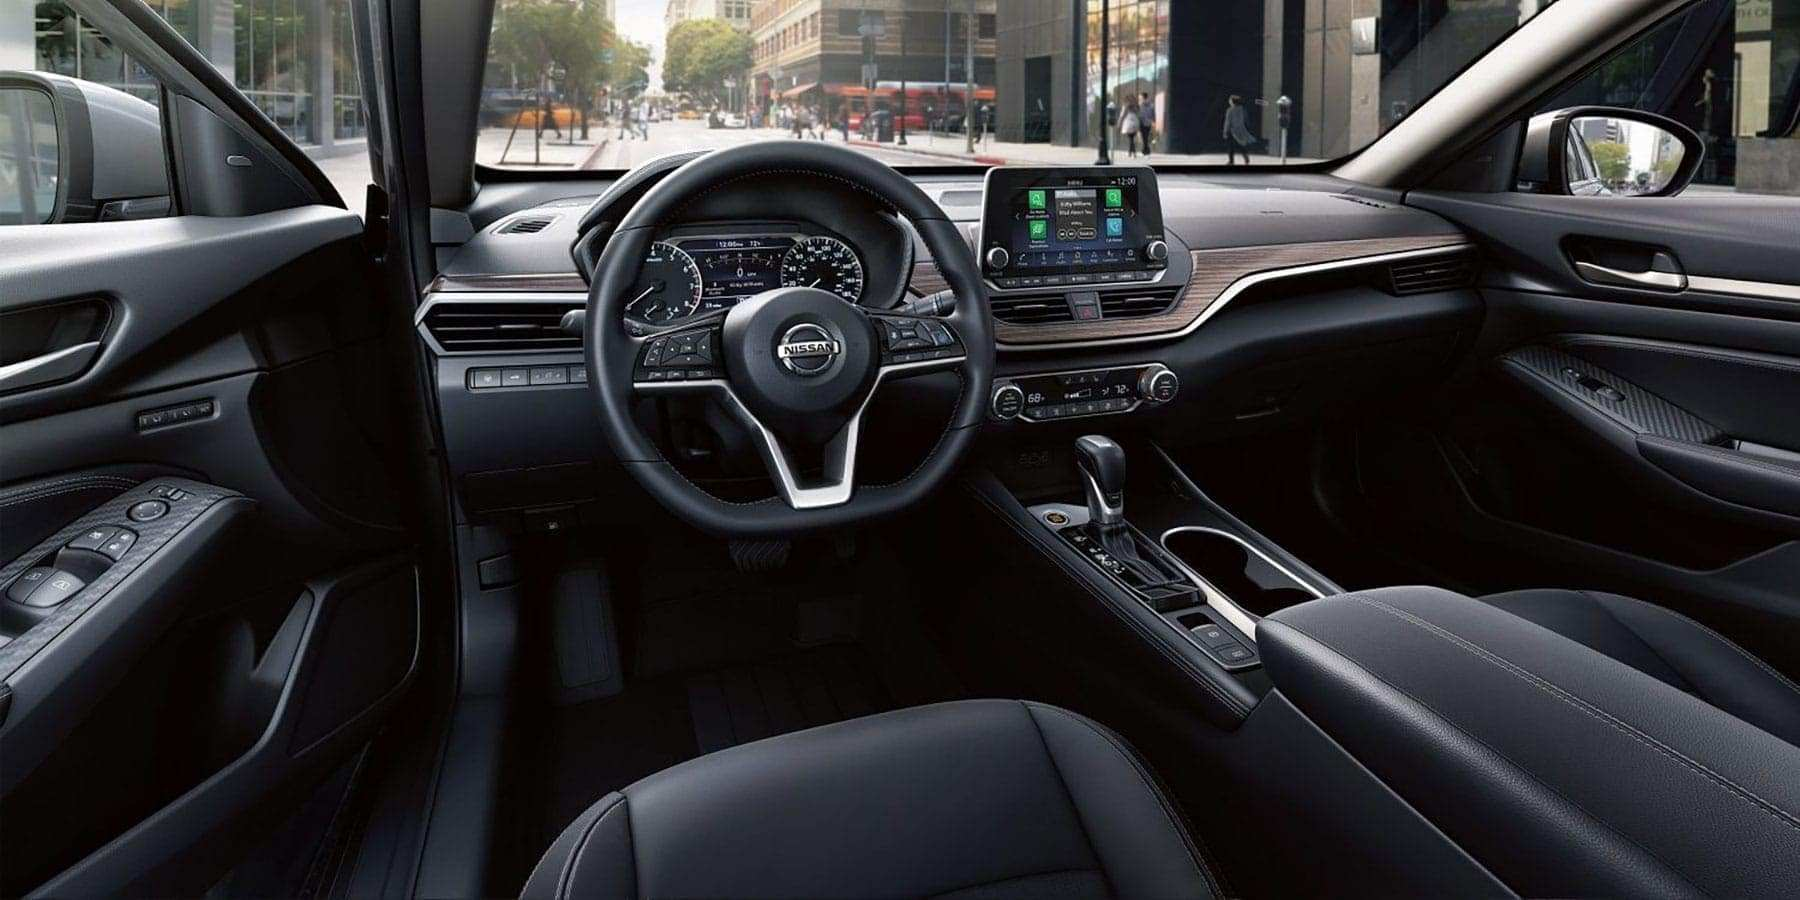 65 The Best Nissan Altima Interior Photos